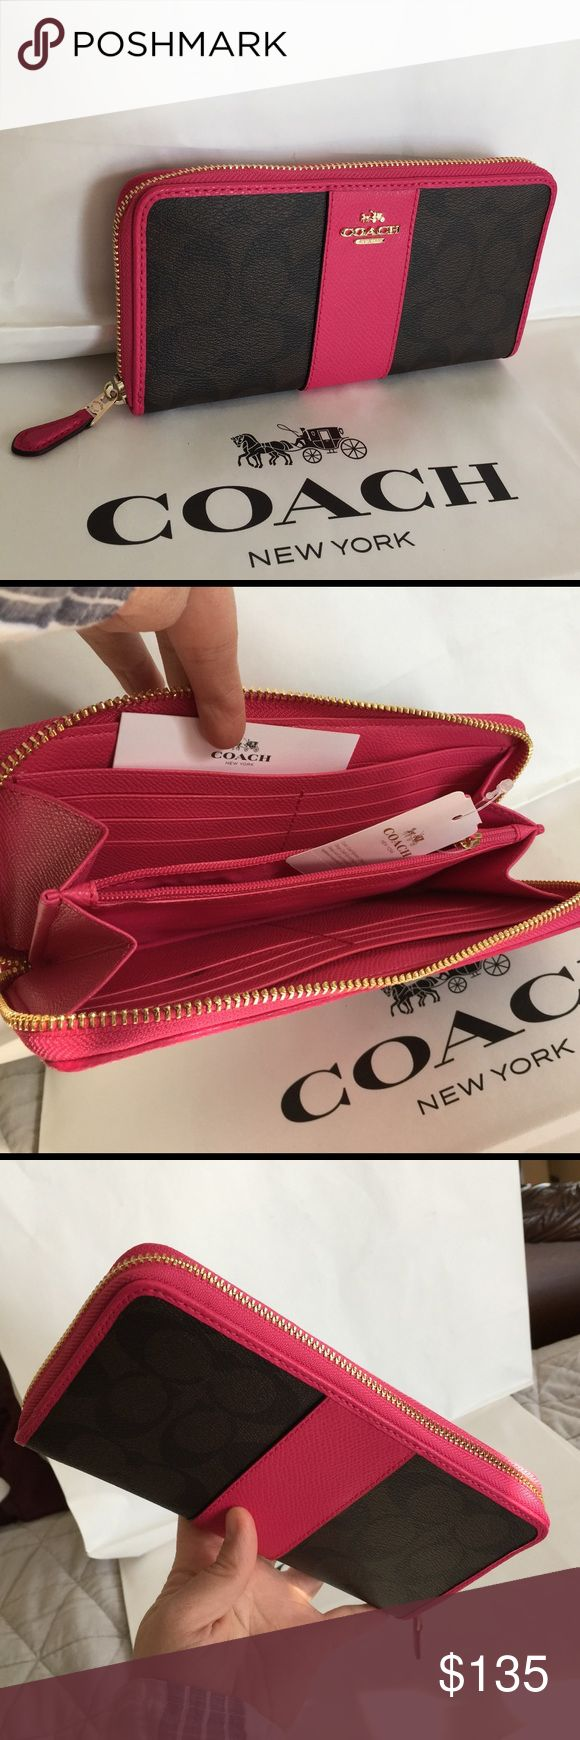 🎄Coach Wallet🎄 100% Authentic Coach Wallet, brand new with tag!😍😍😍color Brown/Pink Ruby. Coach Bags Wallets